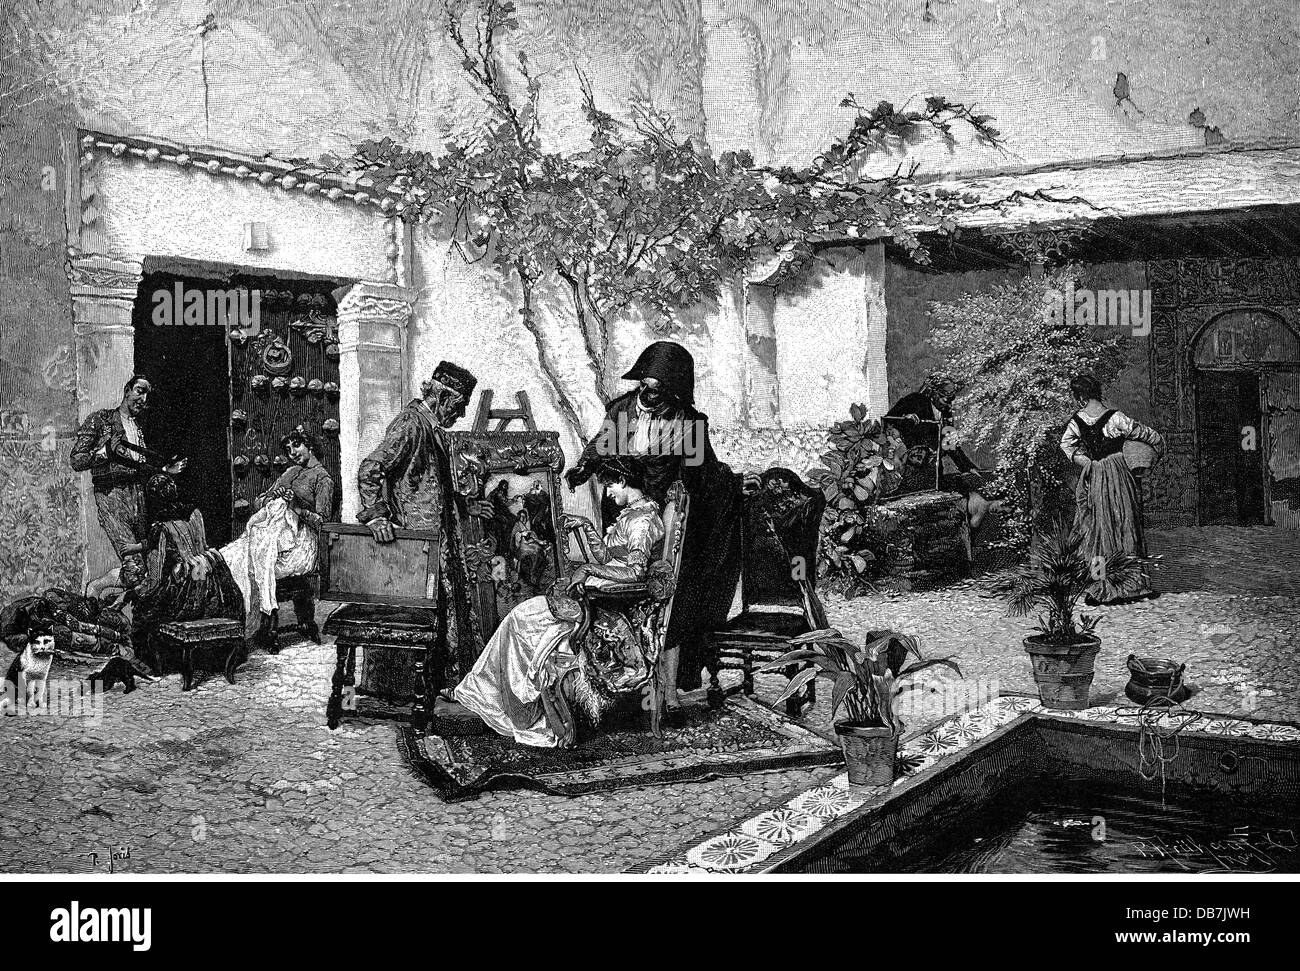 trade, merchants, customer vsiiting antiques dealer, after painting, by Pio Joris (1843 - 1921), wood engraving, - Stock Image